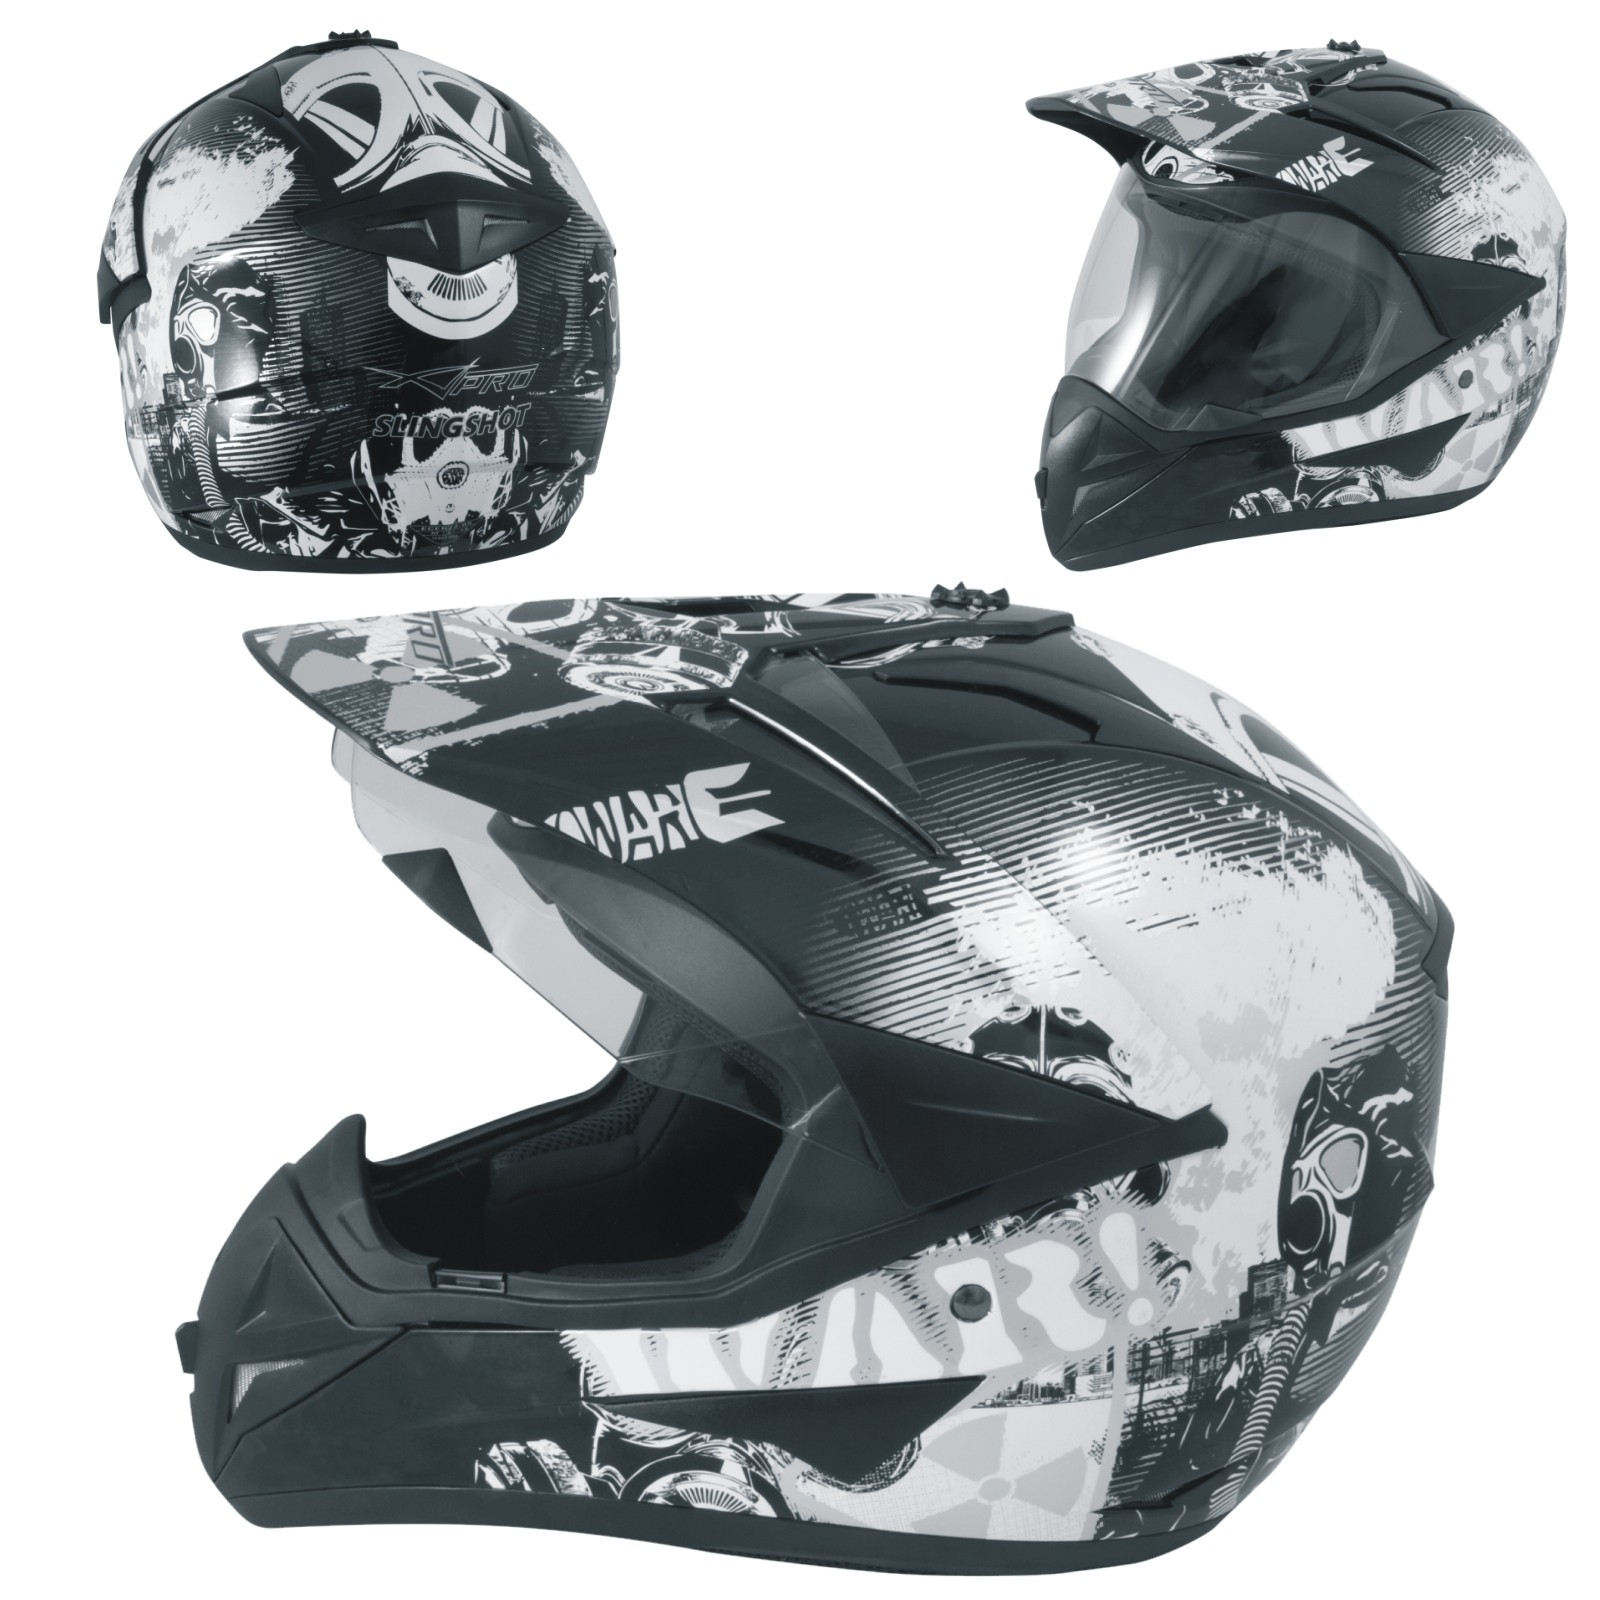 Casco Moto Cross Enduro Trial Quad Off Road Visiera Anti Nebbia Nero Grafica